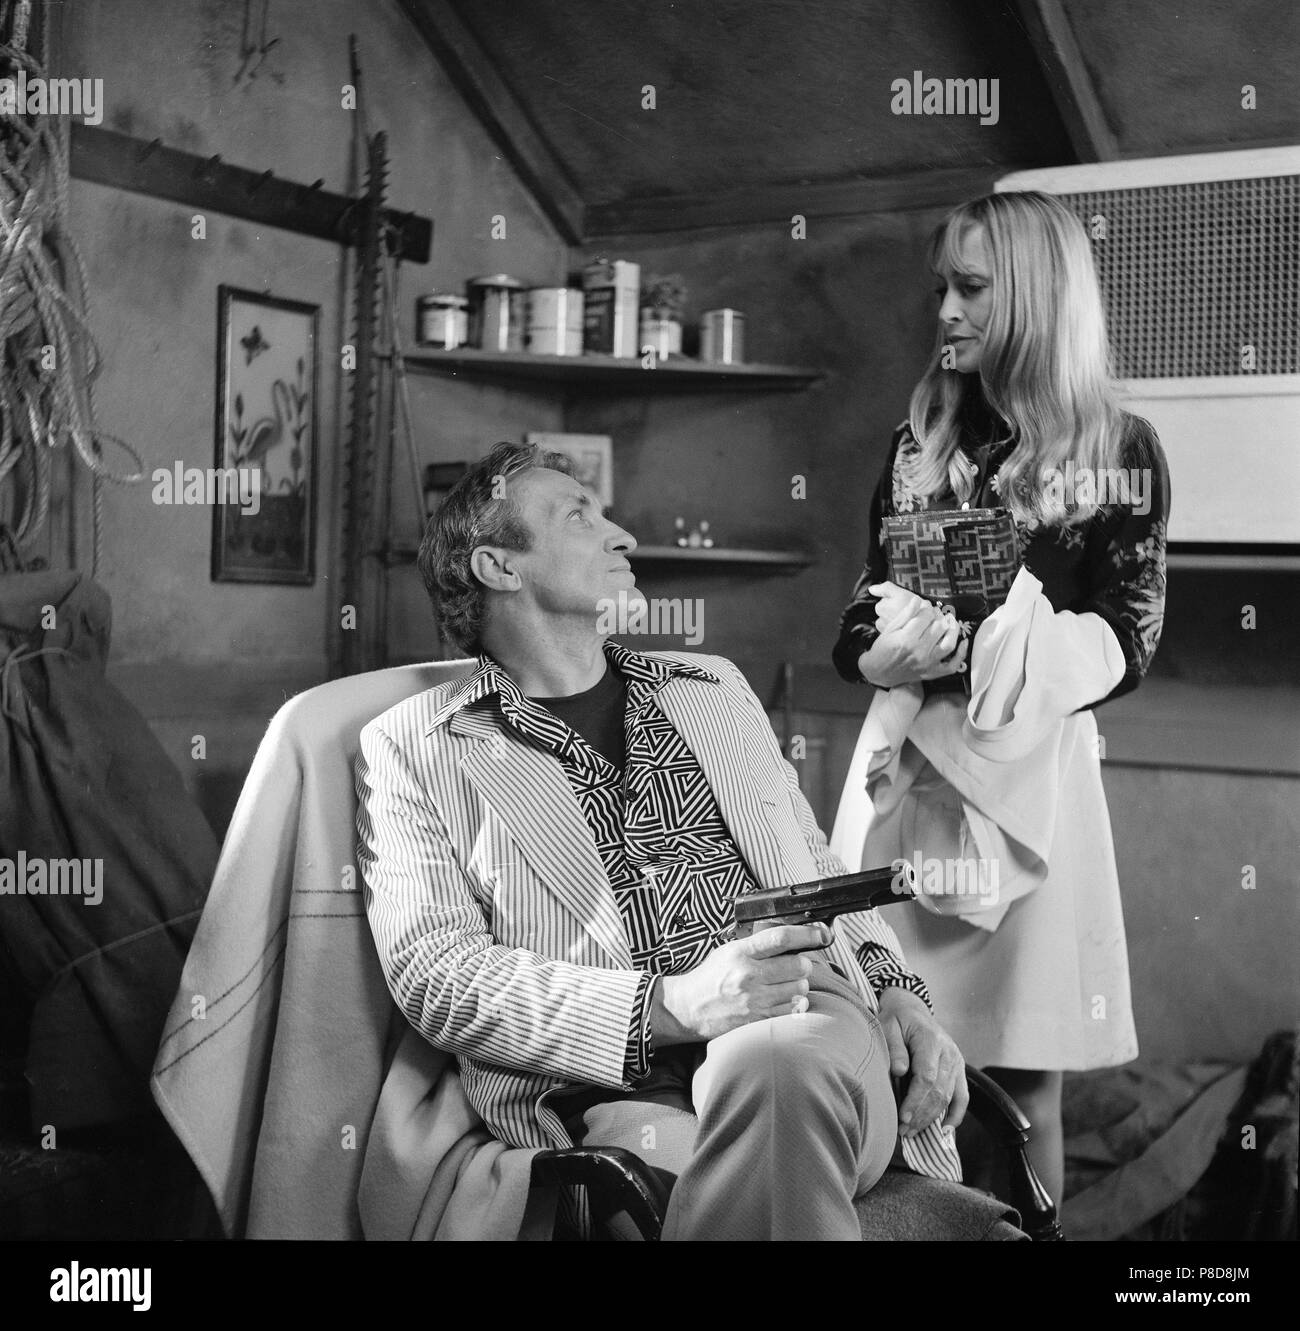 Fear is the Key (1972) Dolph Sweet, Suzy Kendall,     Date: 1972 - Stock Image